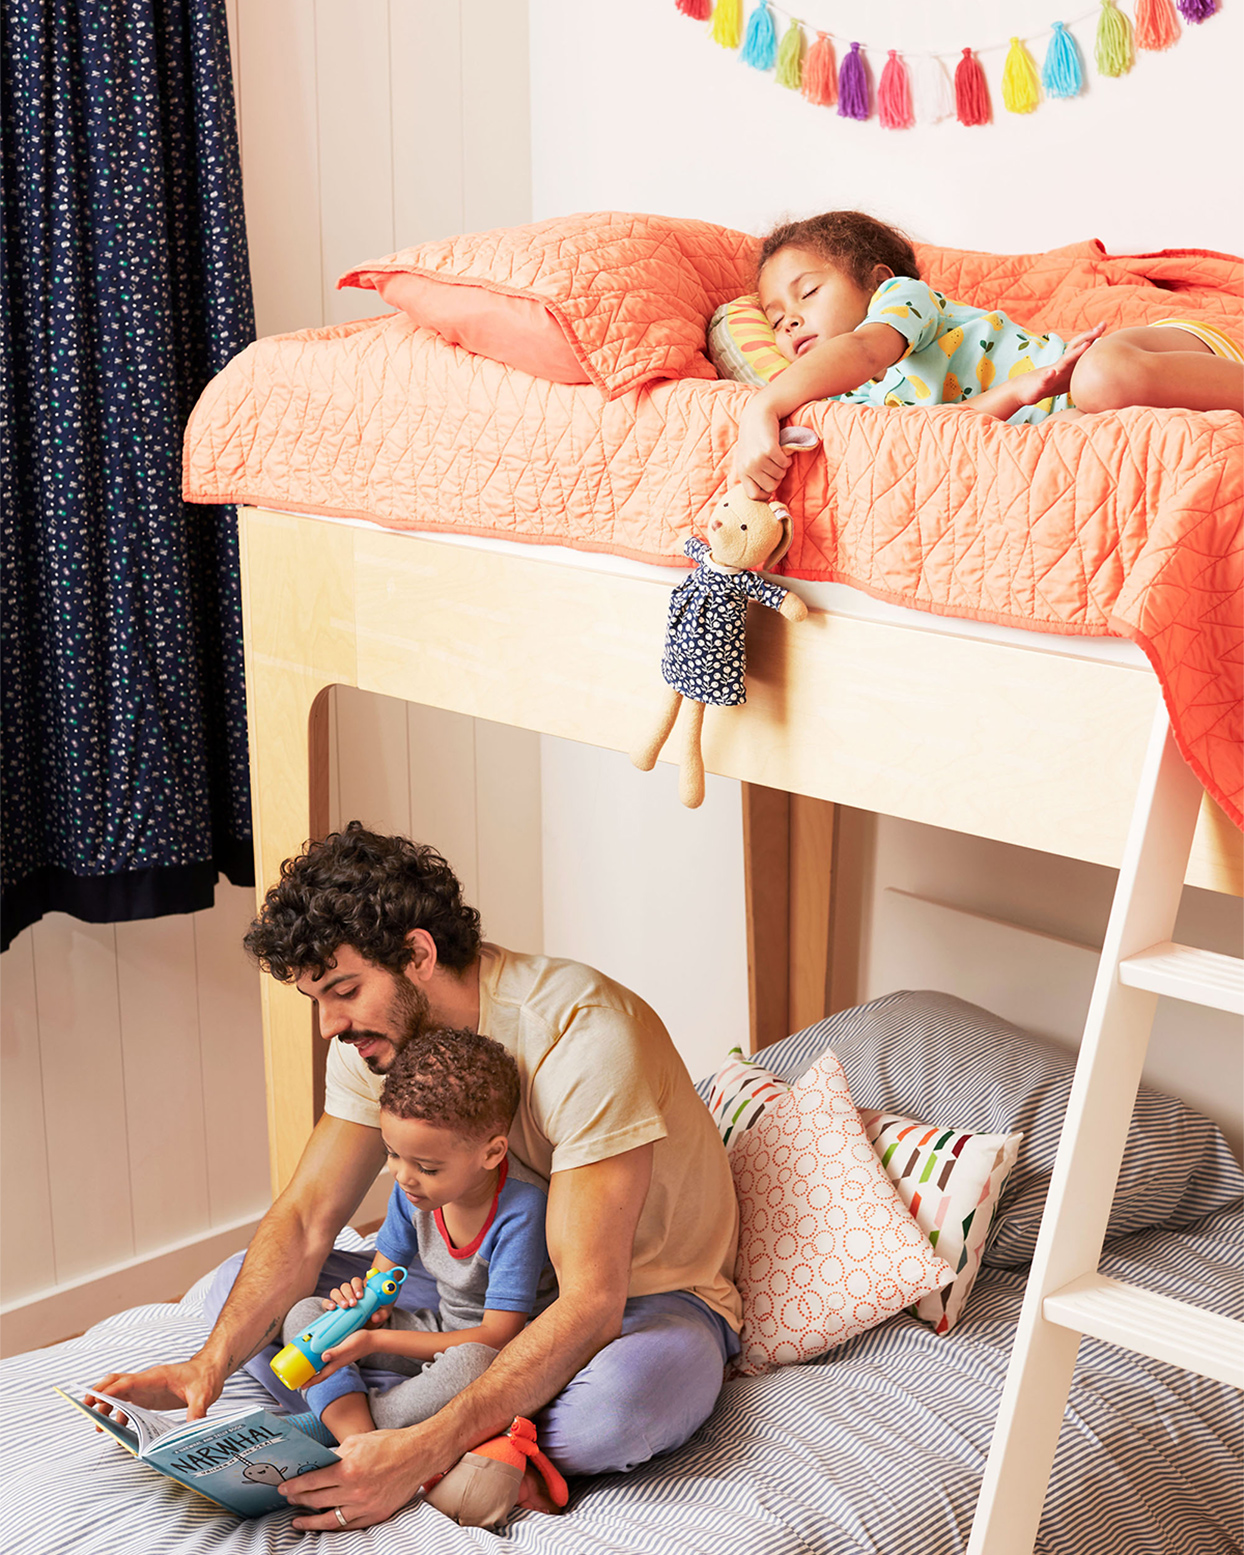 Coronavirus is Changing the Conversation of What Being a Stay-at-Home Parent Means